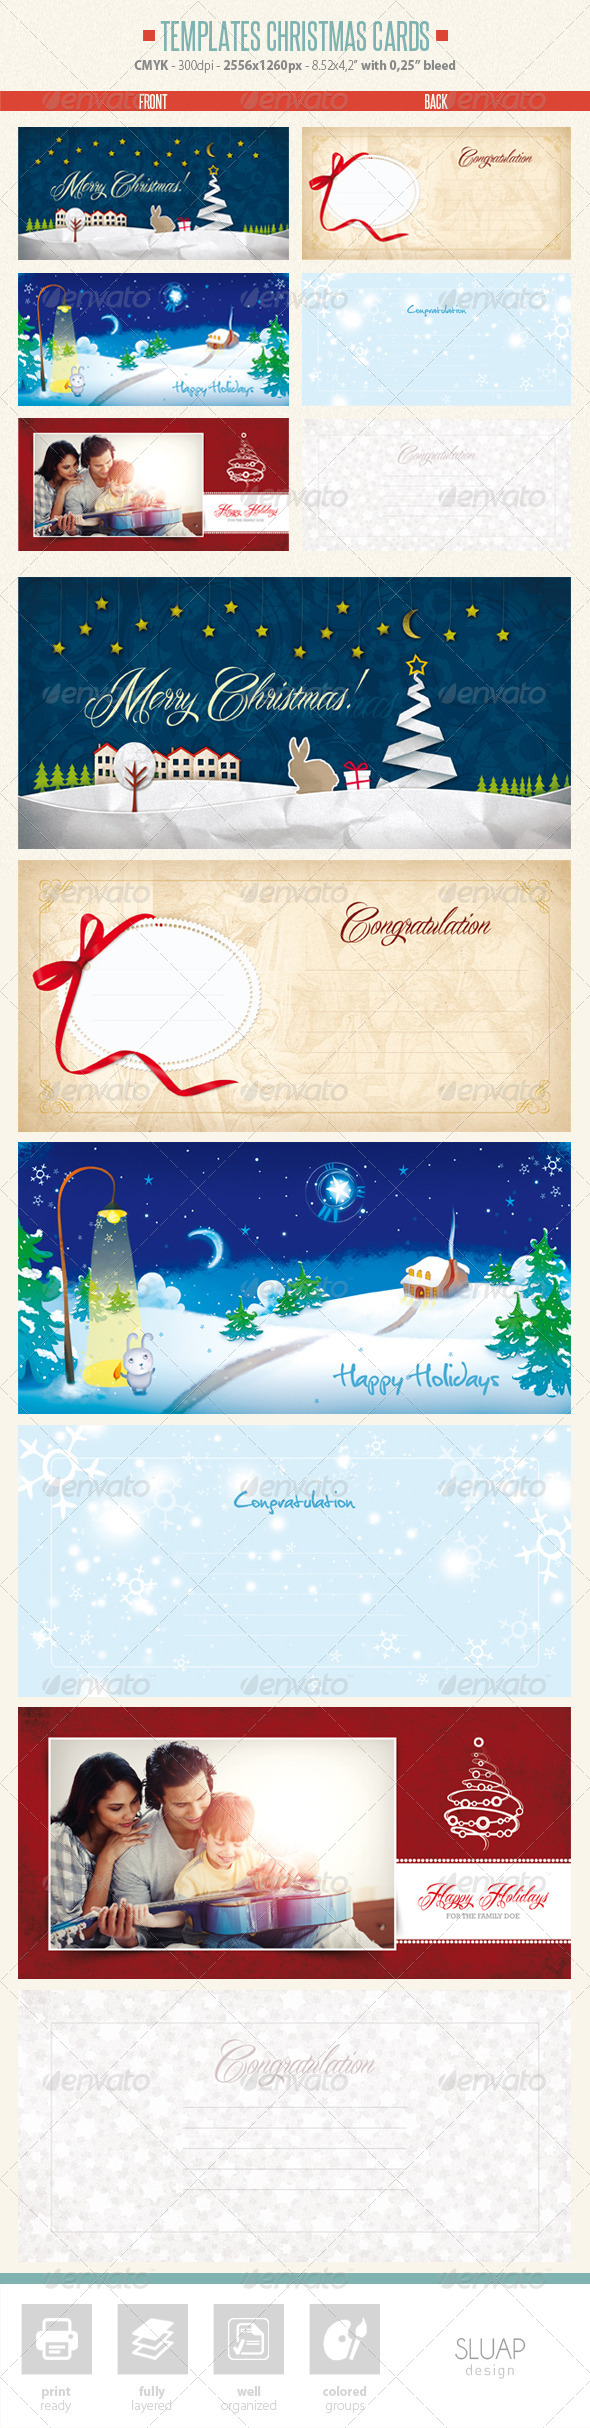 Templates Christmas Cards - Holiday Greeting Cards